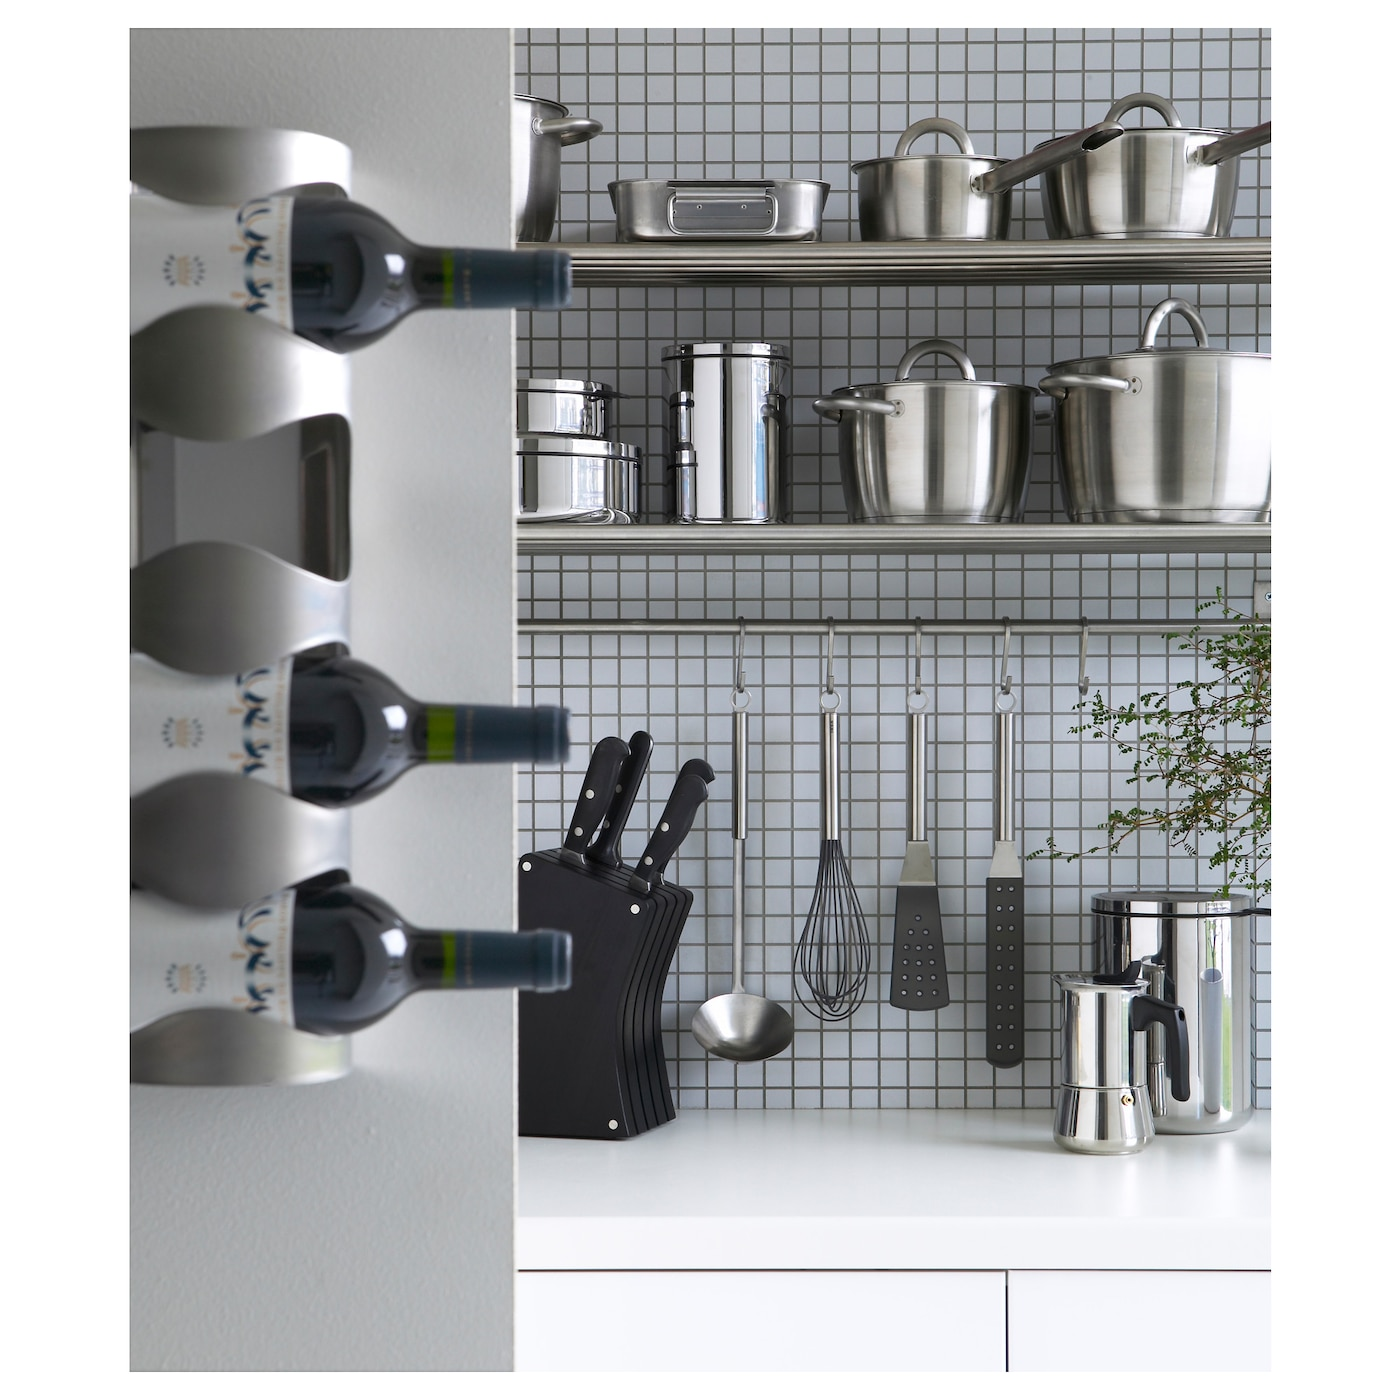 IKEA VURM 4-bottle wine rack Can be placed on its back or hung on the wall.